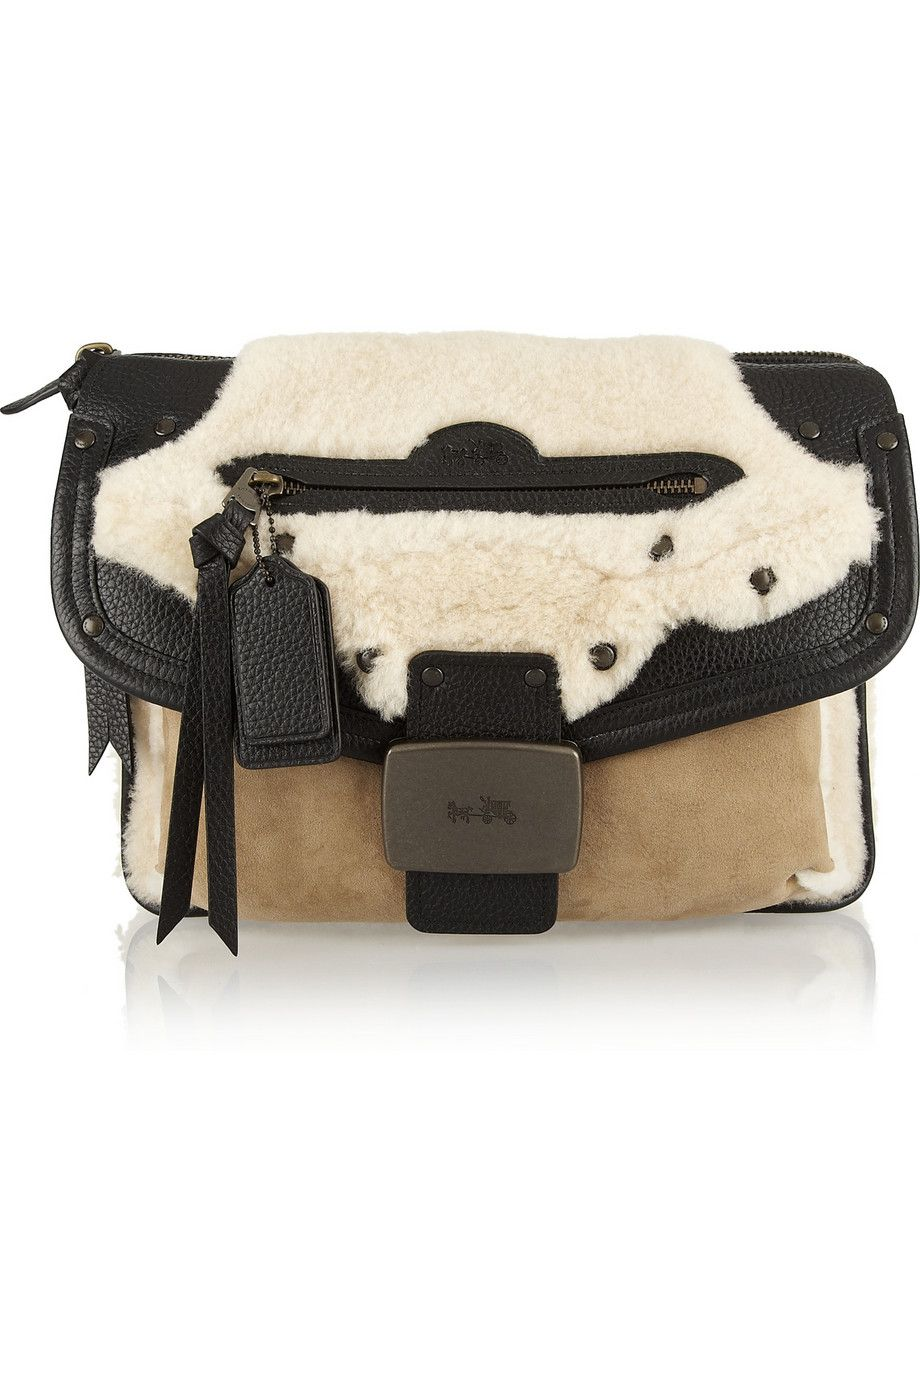 Coach | Rhyder shearling, suede and textured-leather clutch | NET-A-PORTER.COM